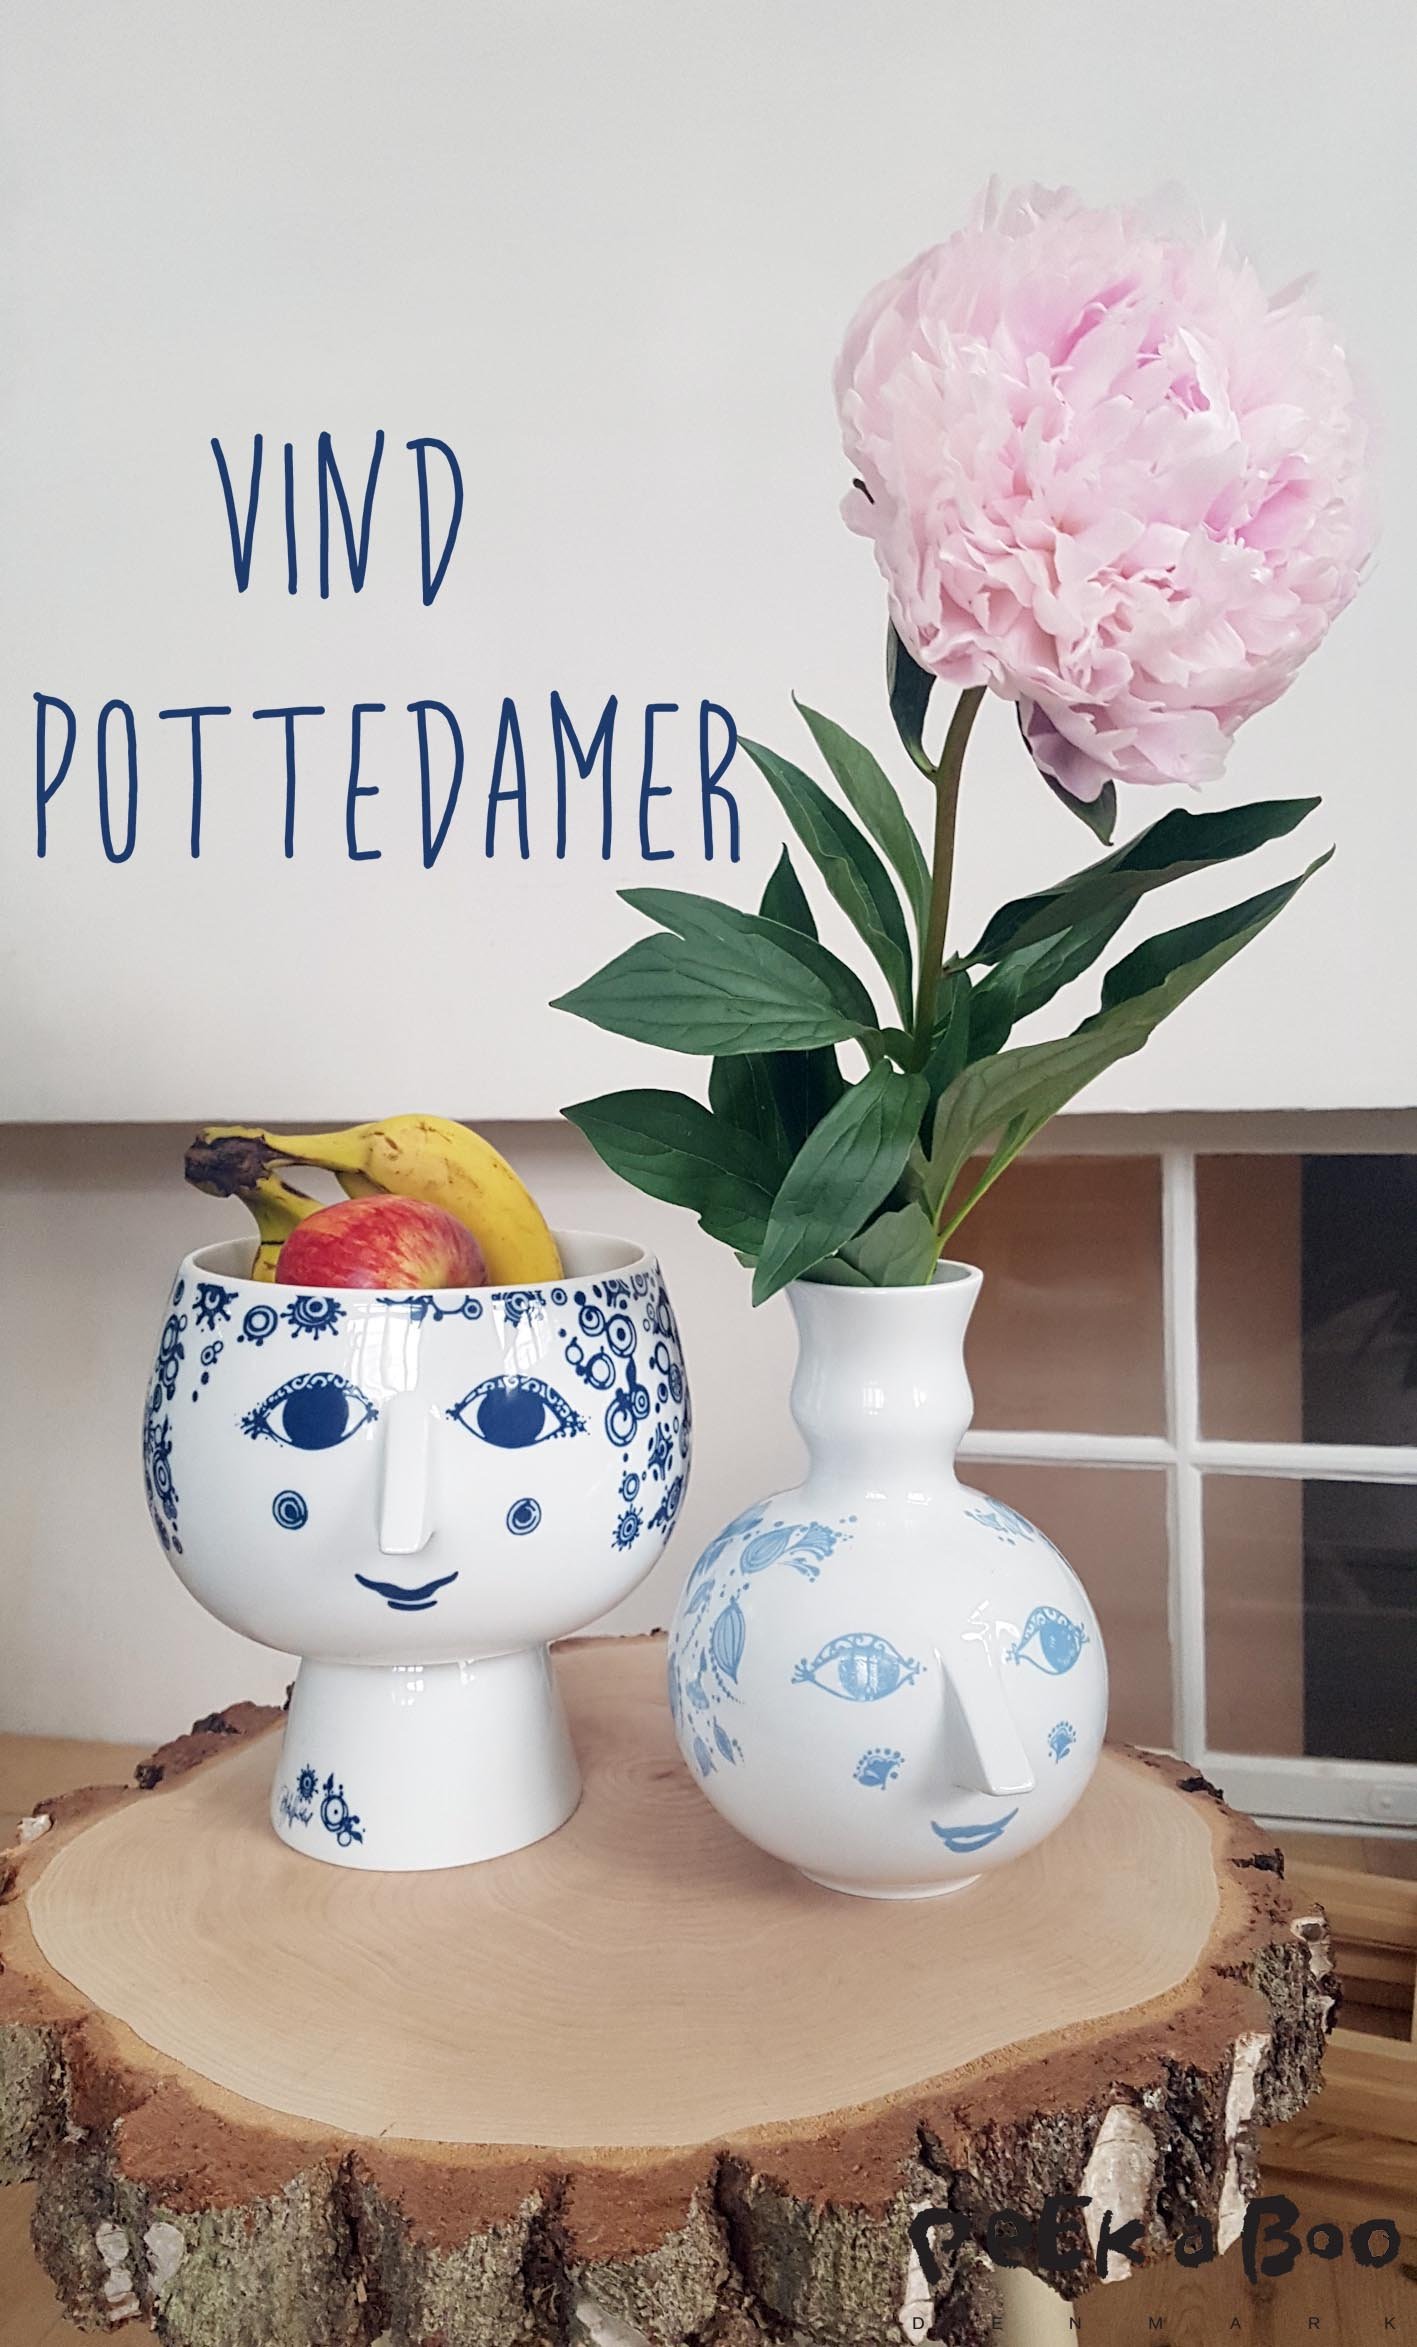 Give away ! Win these two Wiinblad designs for your home.